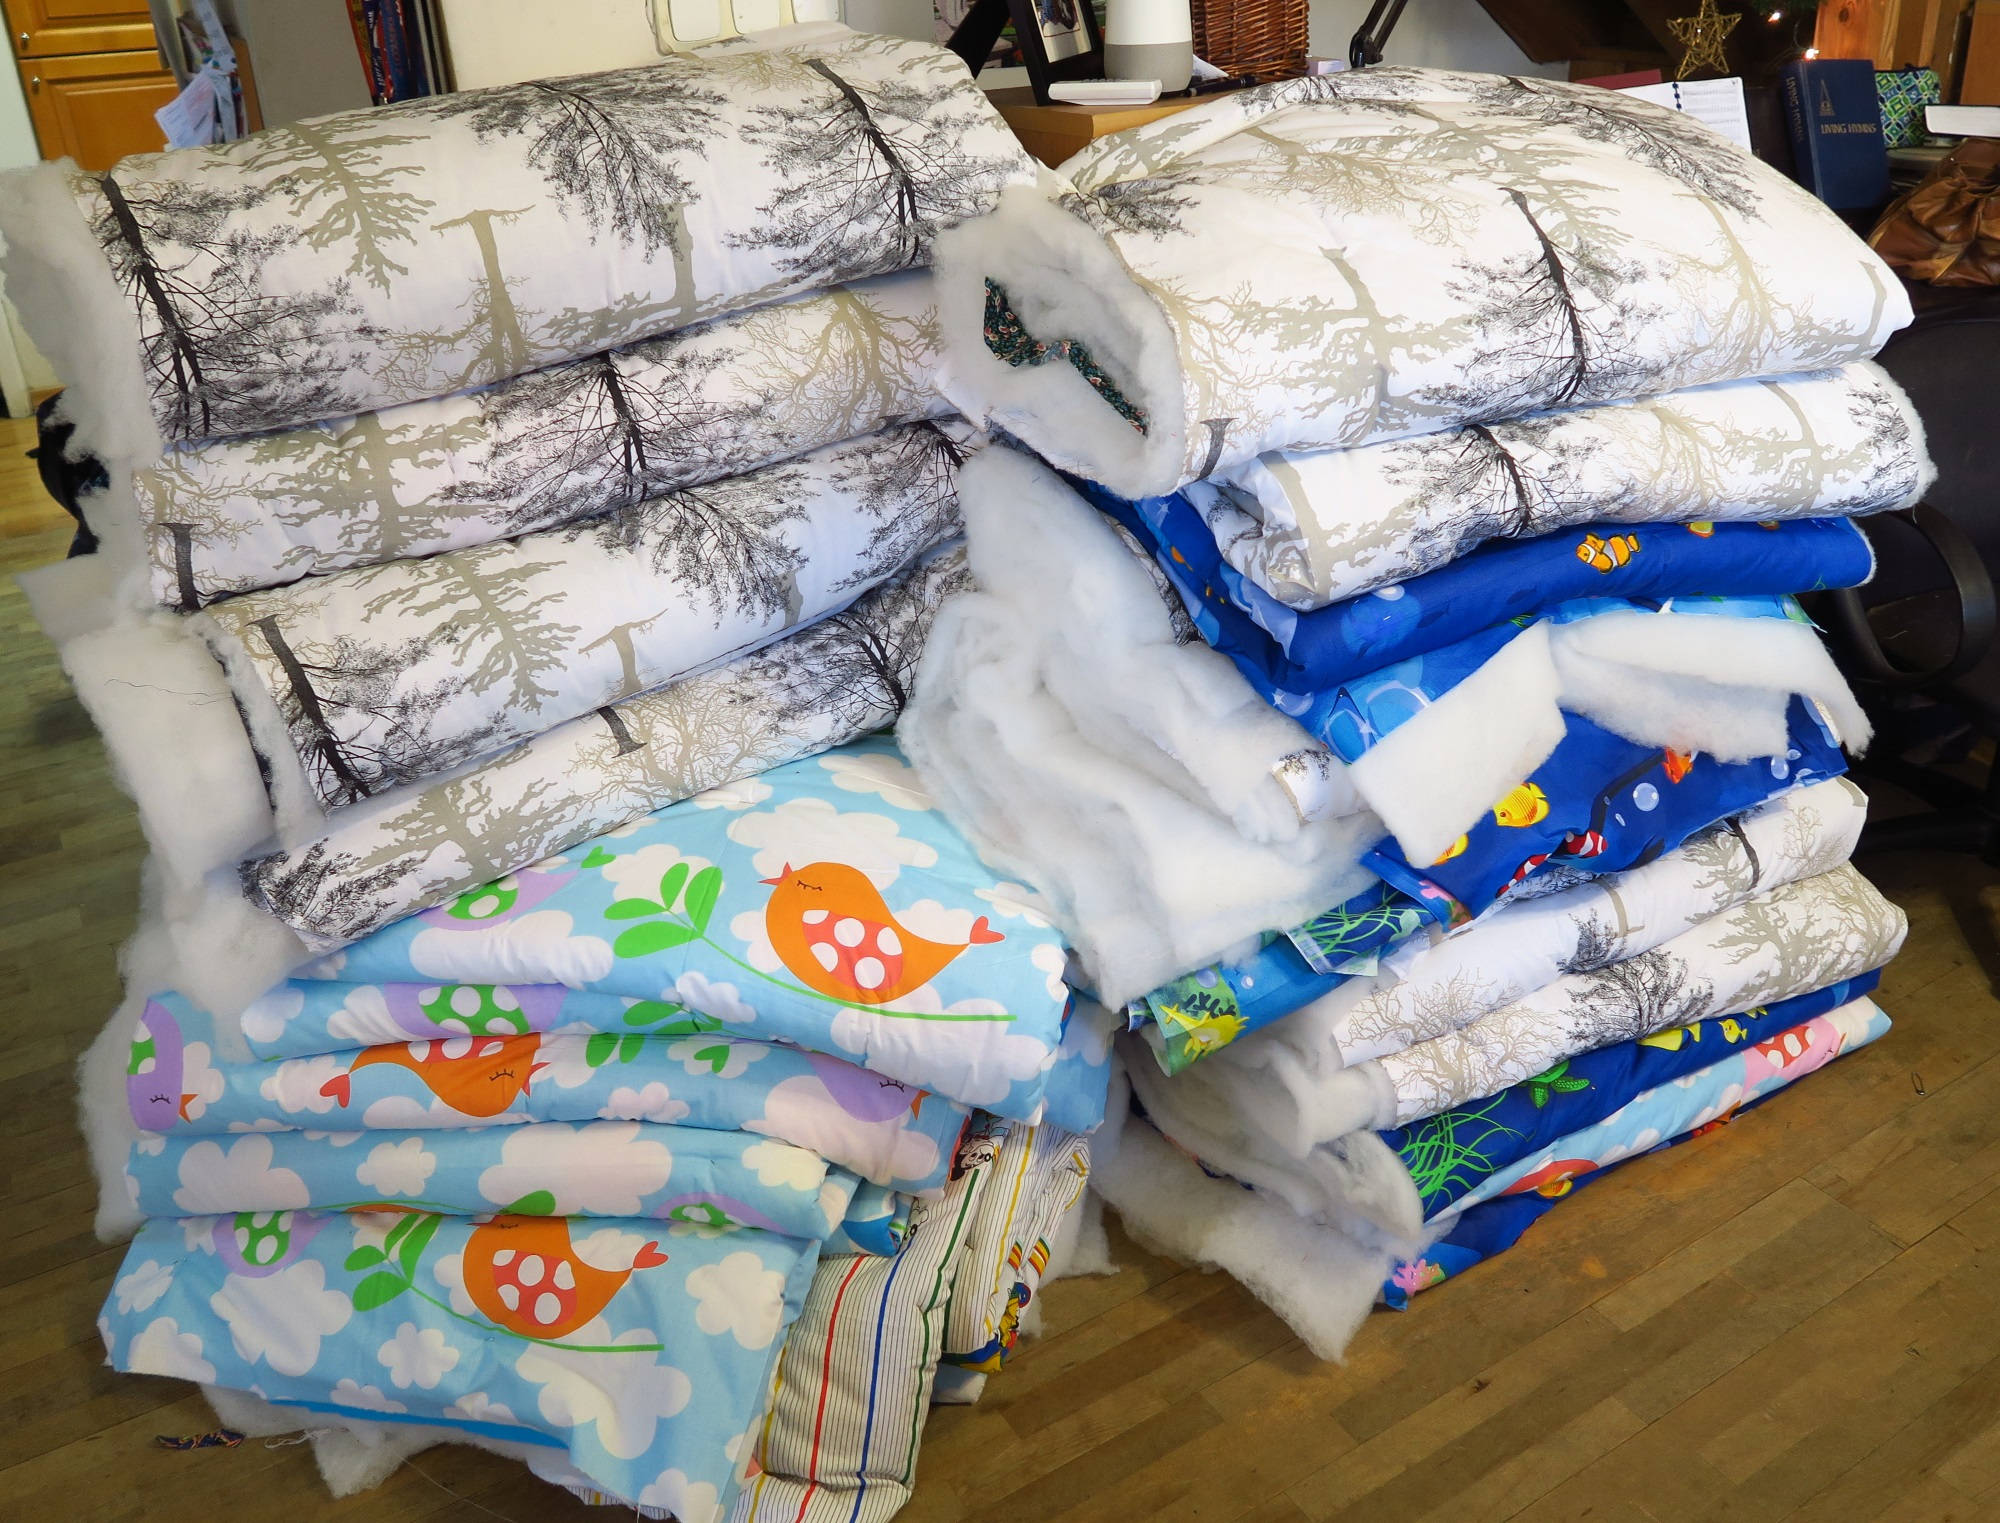 """I got a little tired of sandwiching """"little kids"""" quilts - so we advanced to some of the adult tops I have - darker colors and more mature designs - in other words, not children's prints!"""